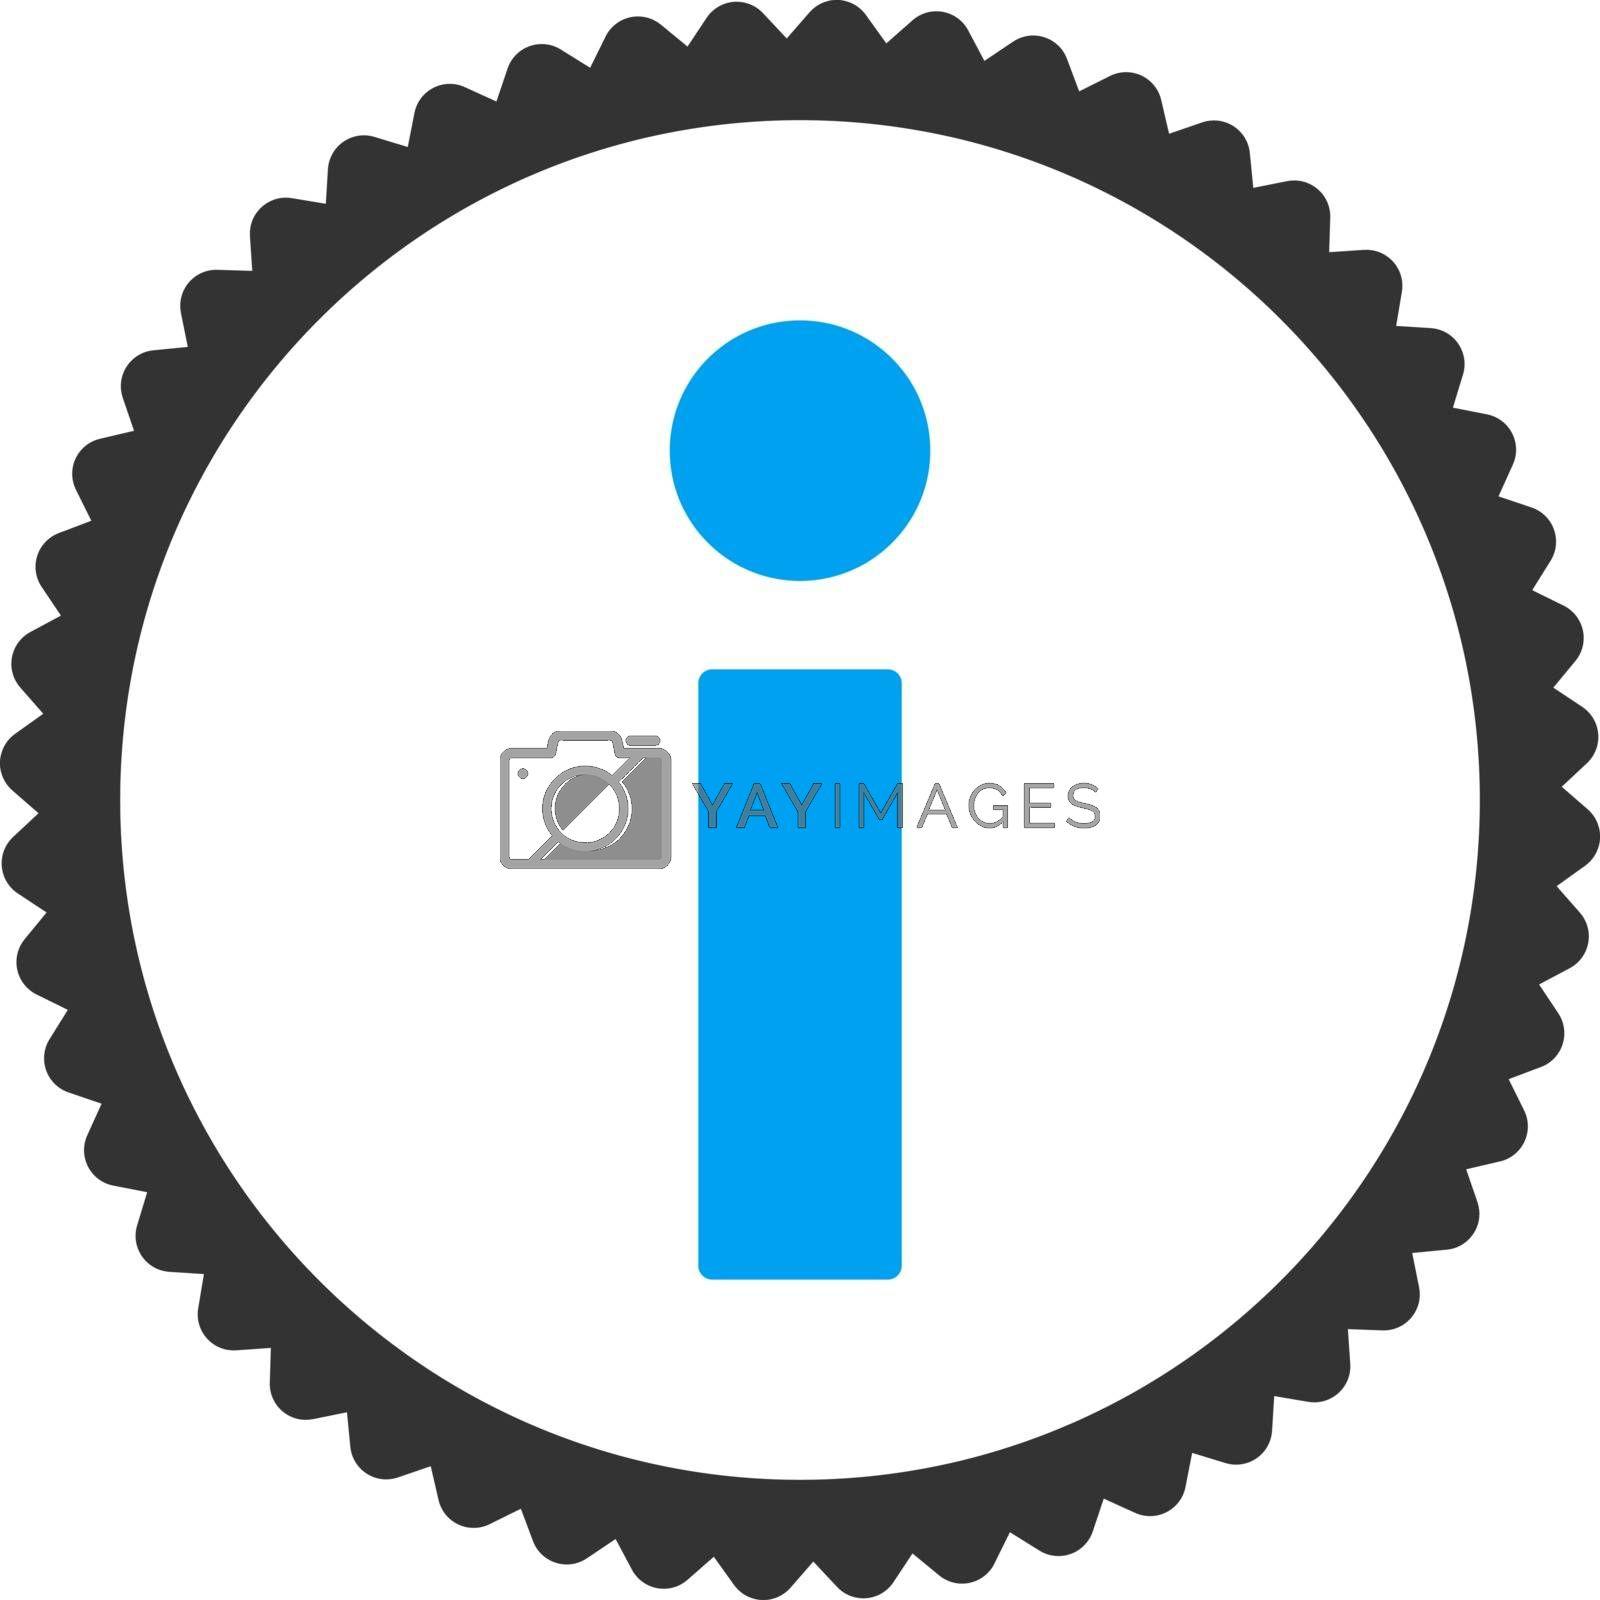 Info flat blue and gray colors round stamp icon by Aha-Soft